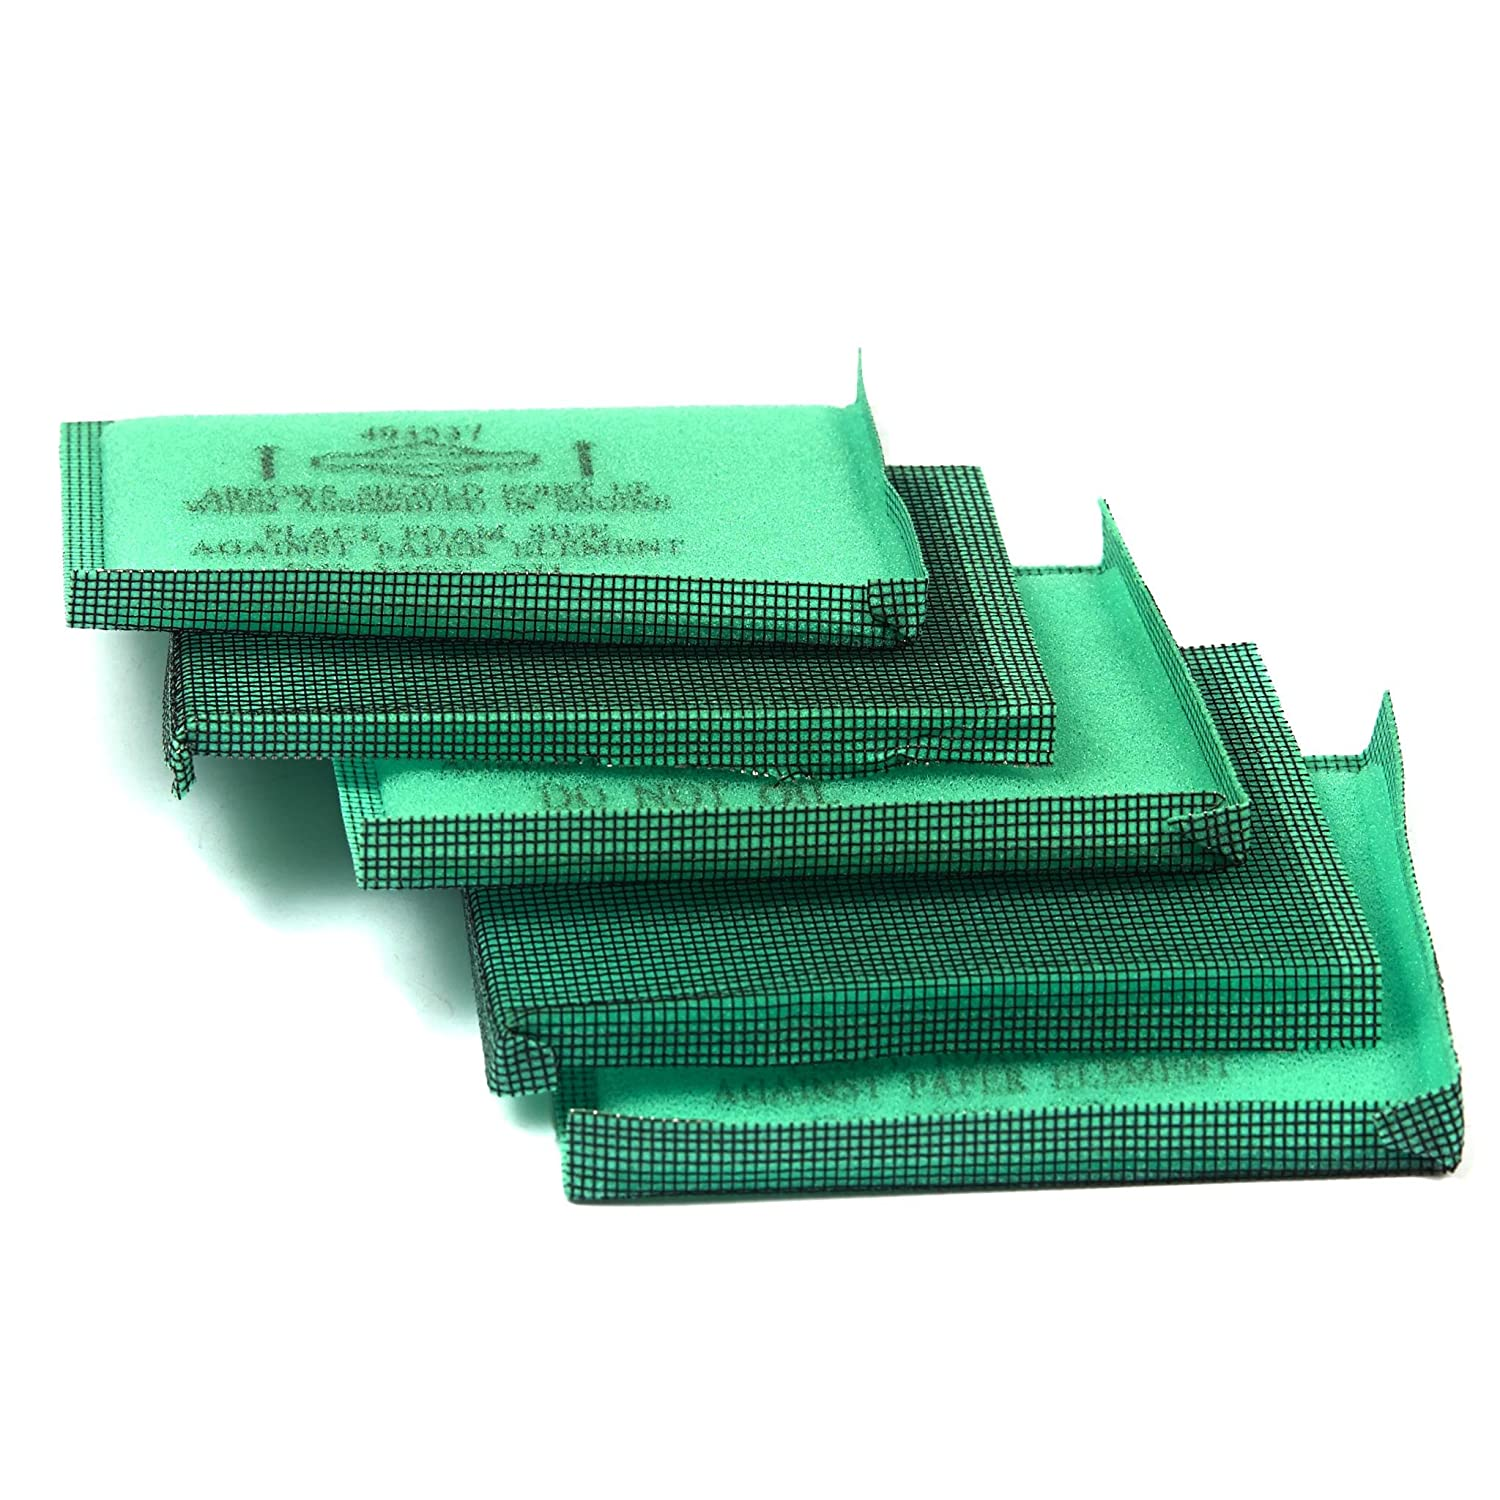 Briggs and Stratton Genuine 4147 Pre-Filters 493537S for Cartridge 491588S (Multi Pack of 5)